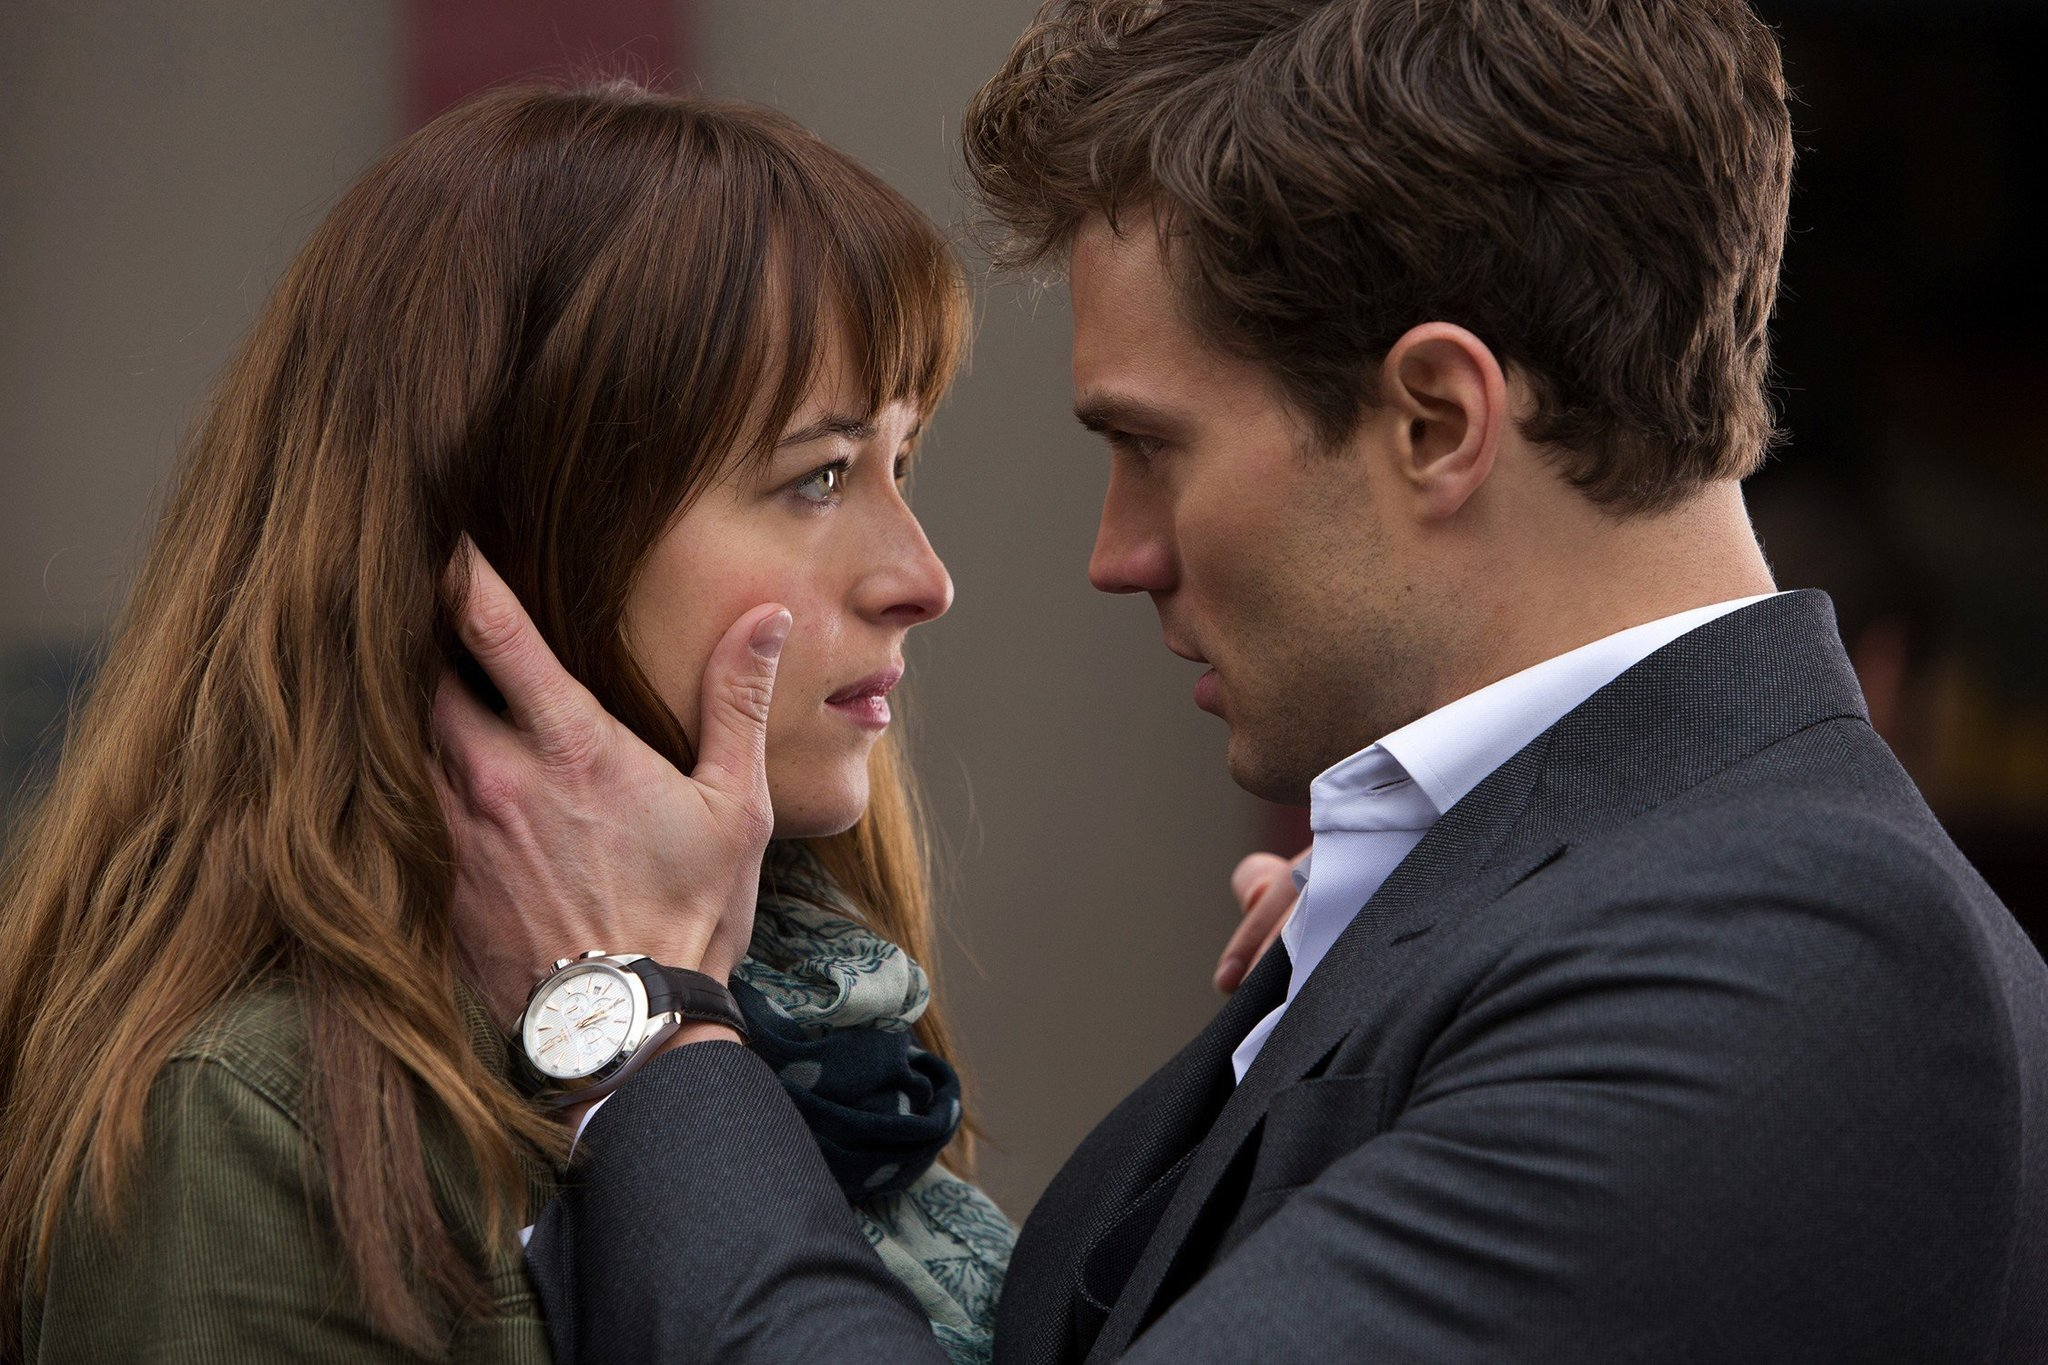 39 fifty shades of grey 39 leading ticket sales on fandango for 50 shades of grey films